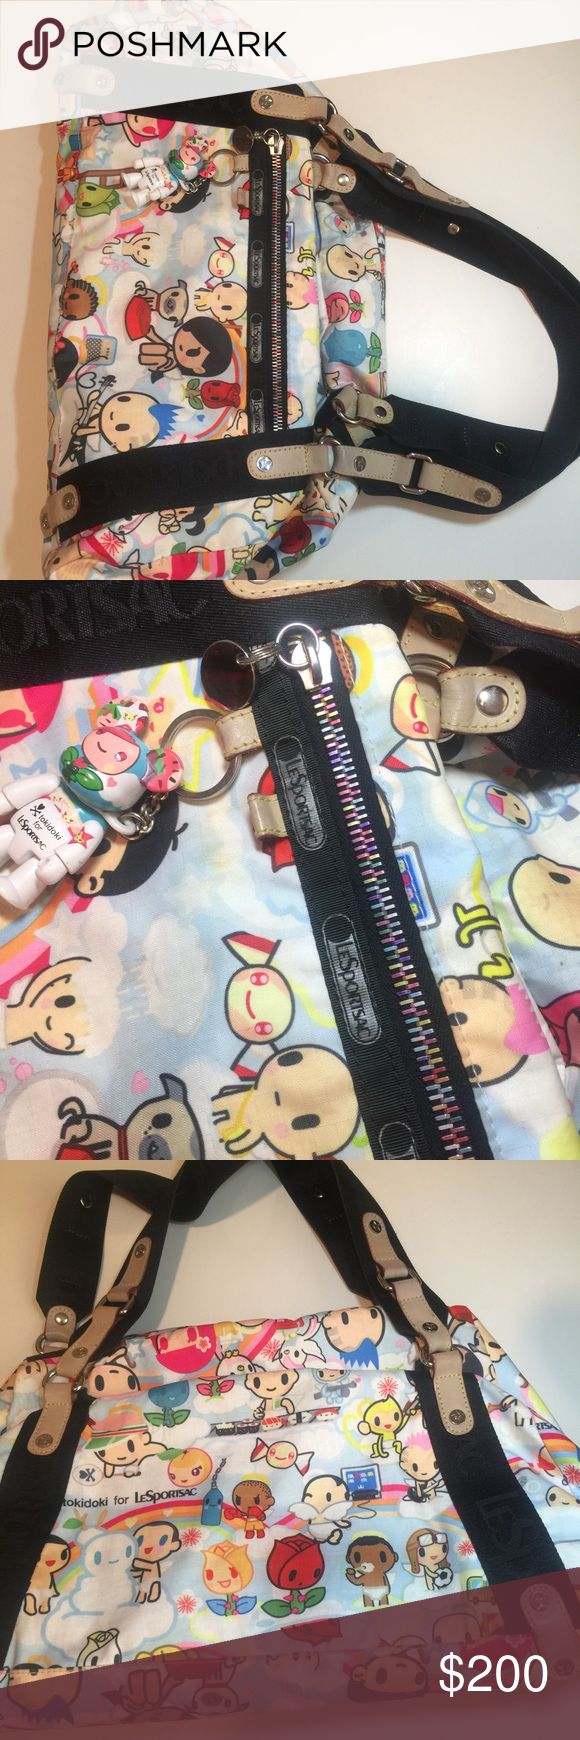 Tokidoki for LeSportsac Paradiso Gioco Purse Bag. Good used condition. A few pen marks in the interior and some easily cleaned dirt marks on fabric and leather from normal use. Comes with qee and is 100% authentic tokidoki Bags Satchels